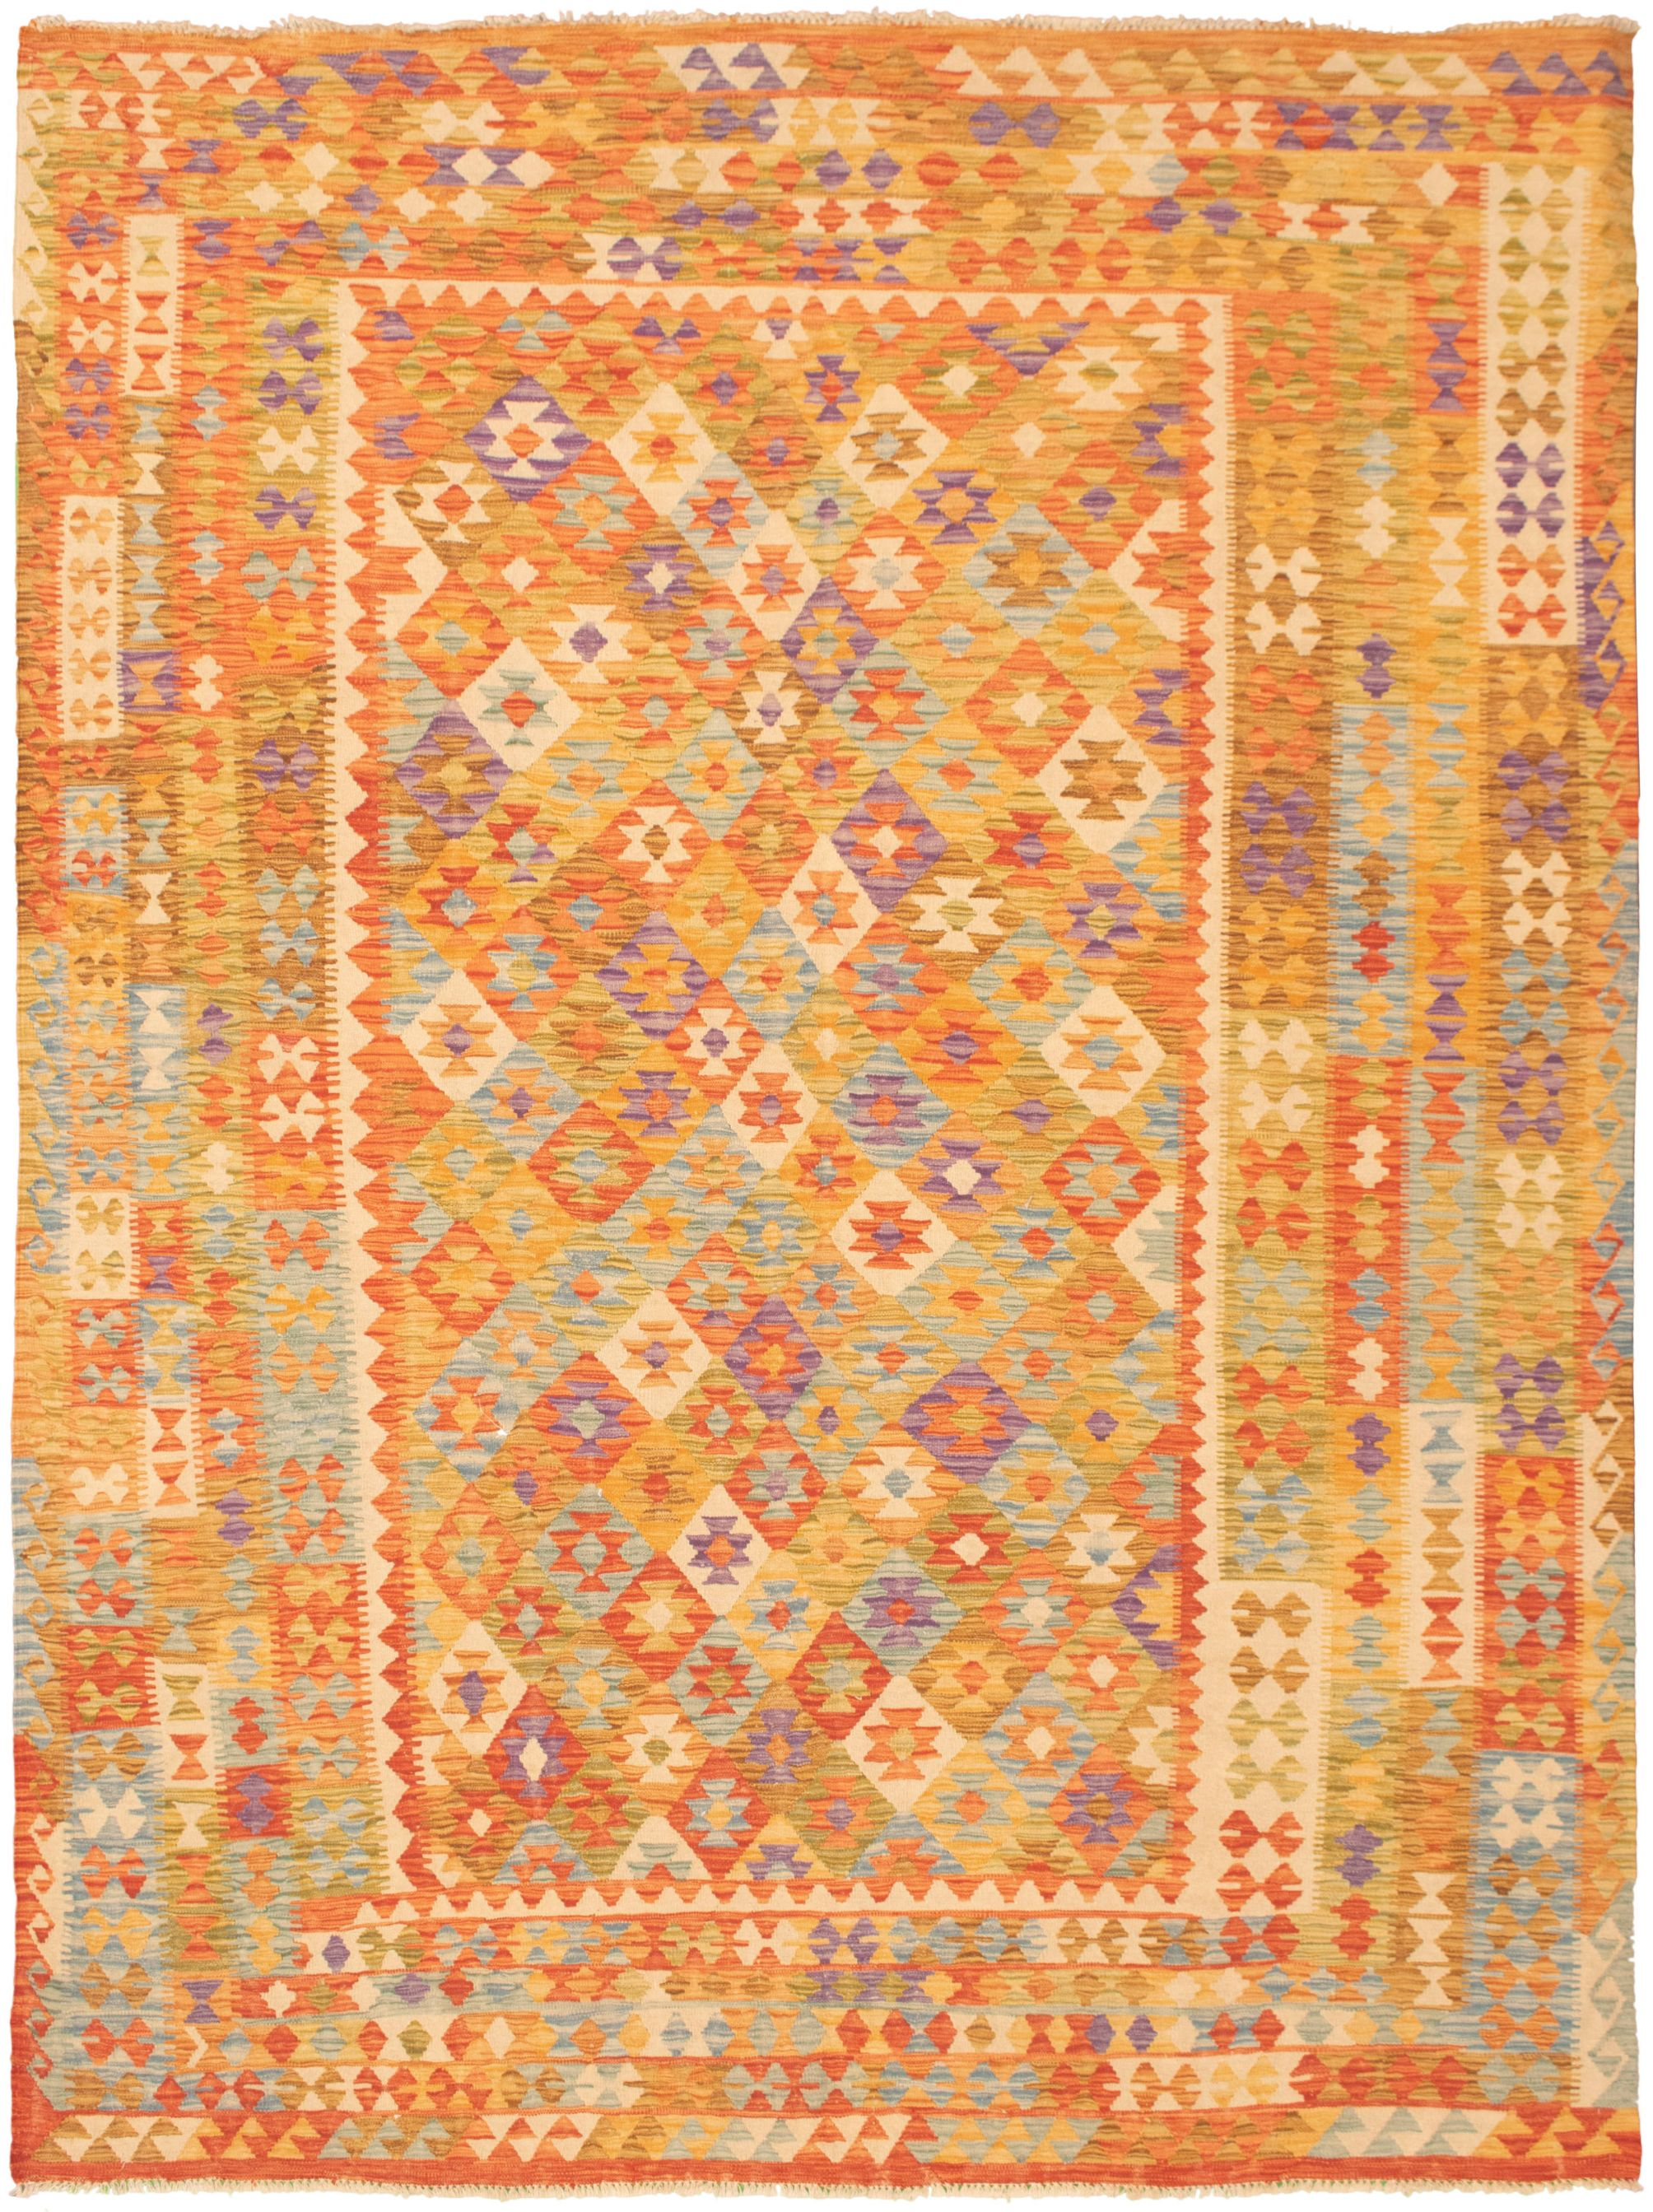 """Hand woven Bold and Colorful  Orange, Red  Kilim 8'2"""" x 11'1"""" Size: 8'2"""" x 11'1"""""""